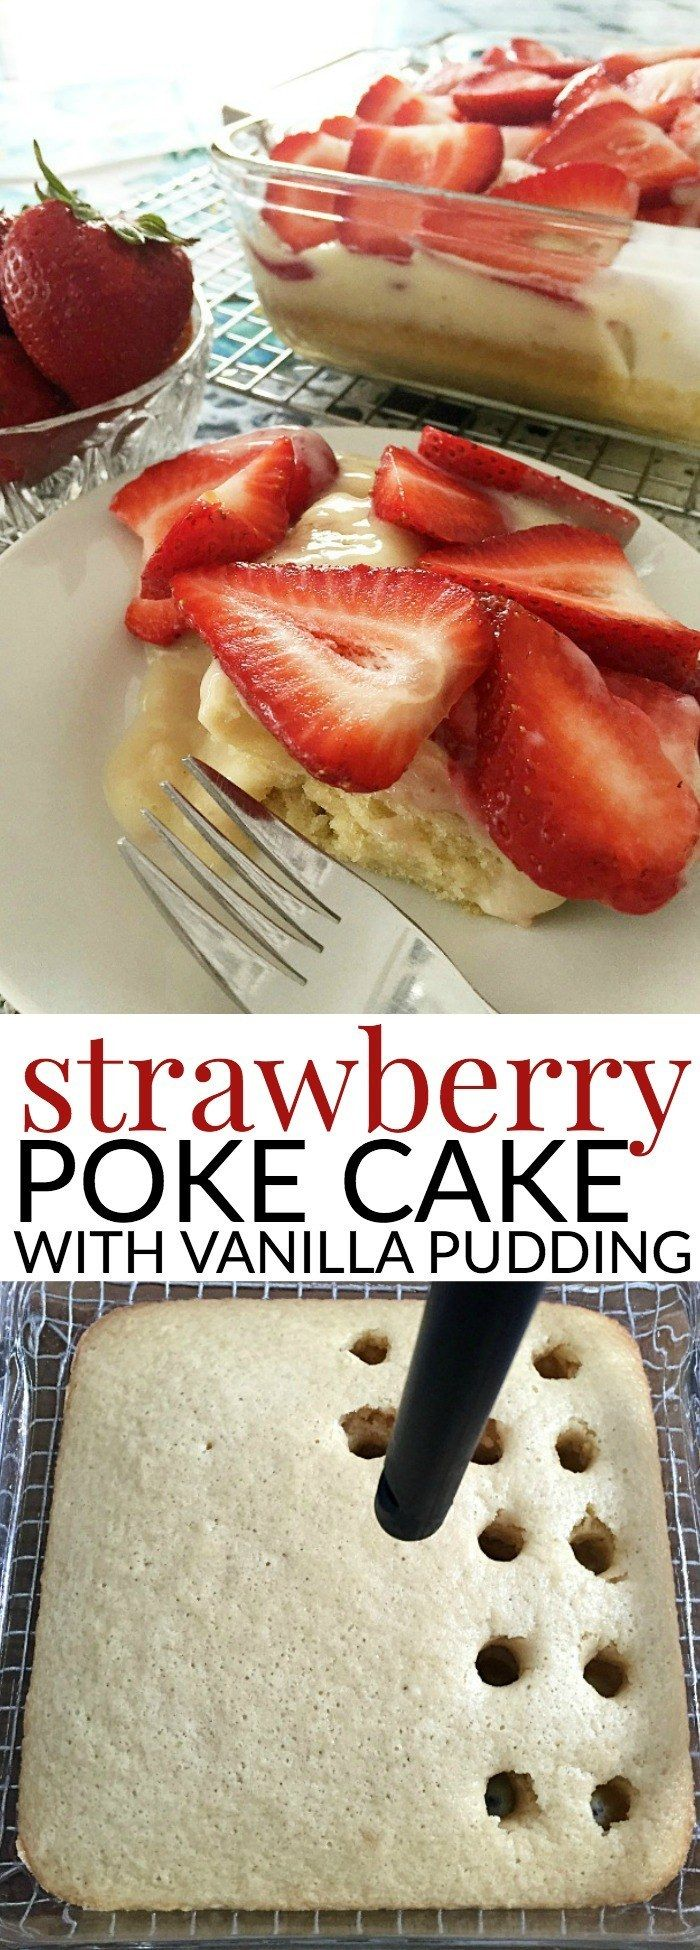 15 Poke Cake Recipes You Need In Your Life (Poke Cake Recipes)